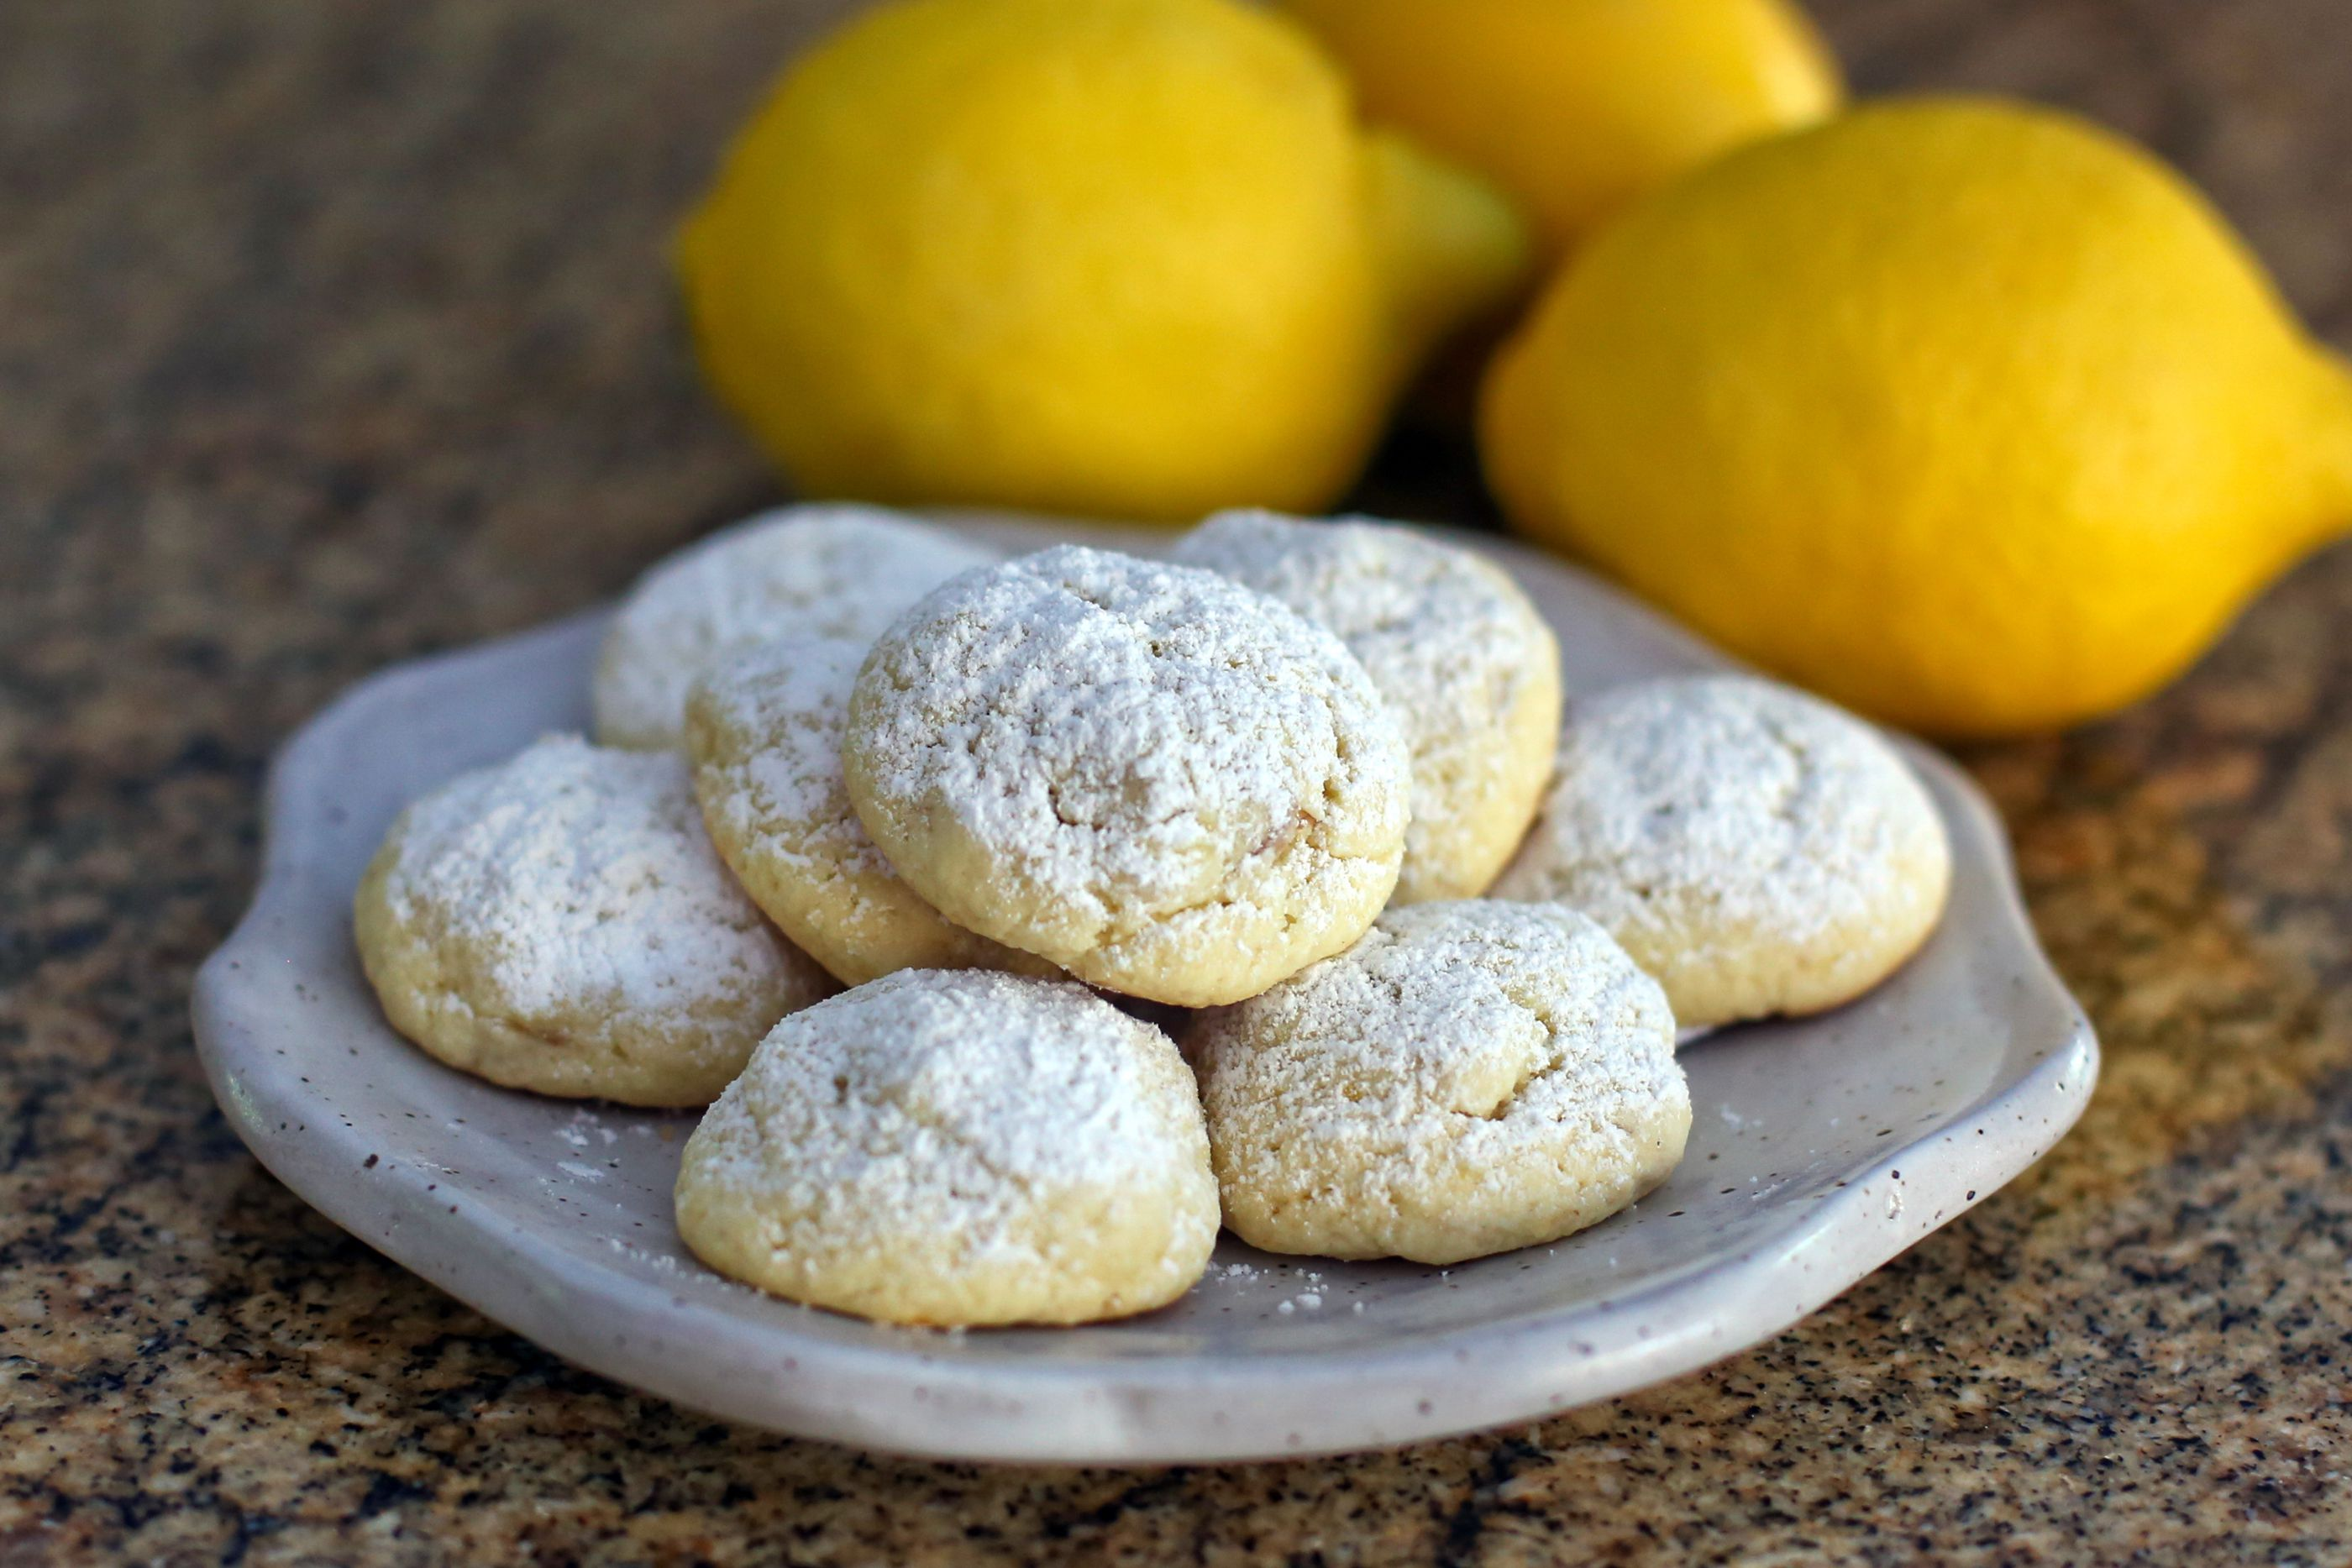 Pucker Up for These Zesty Lemon Cookie Recipes